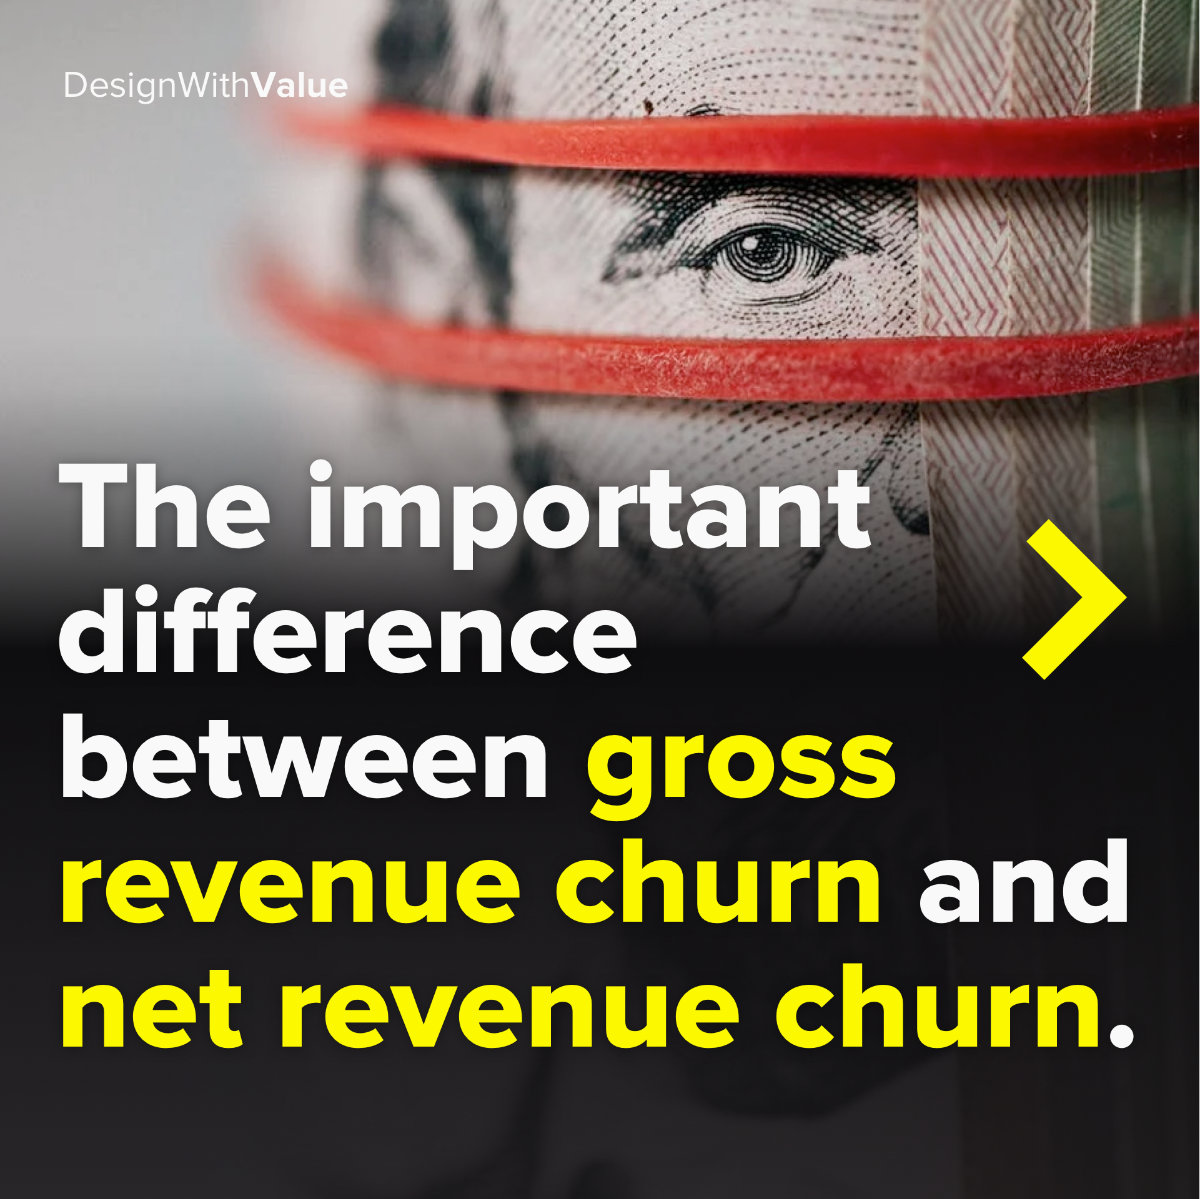 The important difference between gross revenue churn and net revenue churn